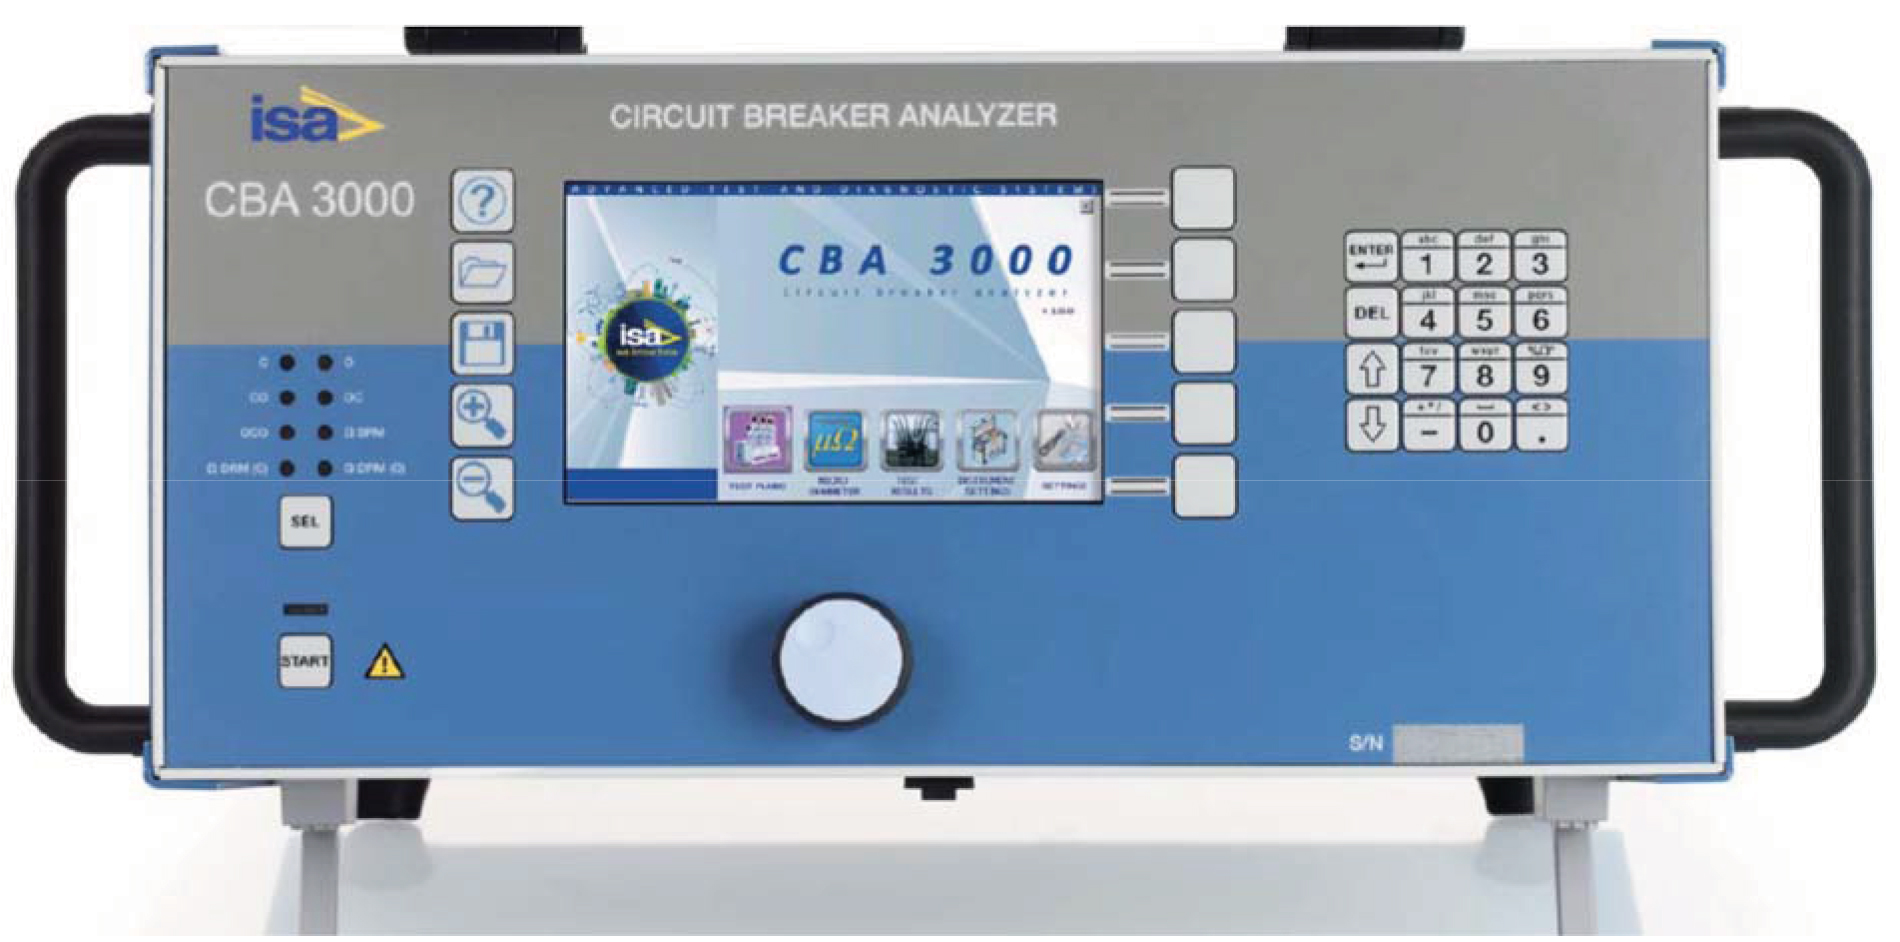 All in one circuit breaker analyser | Credible Carbon